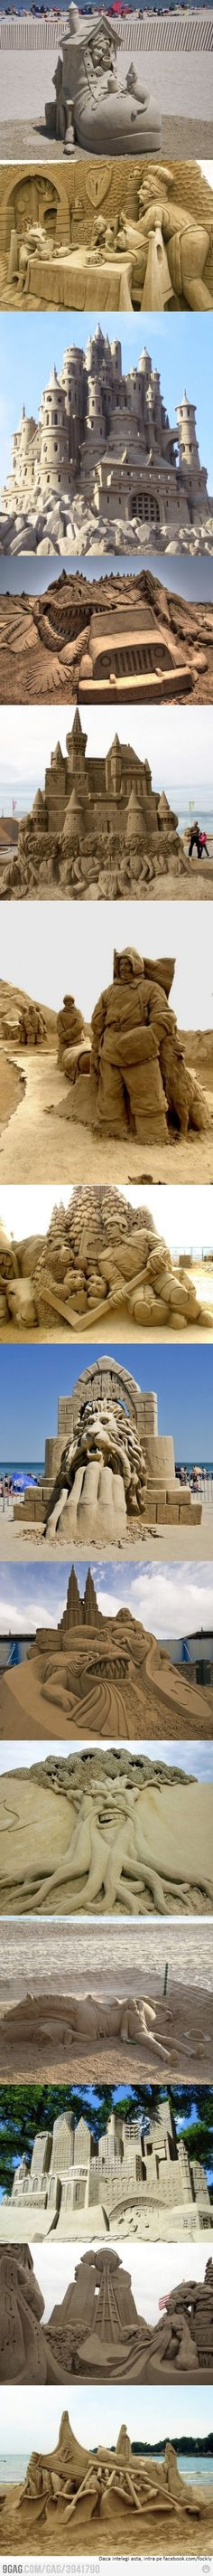 Amazing sand art sculptures